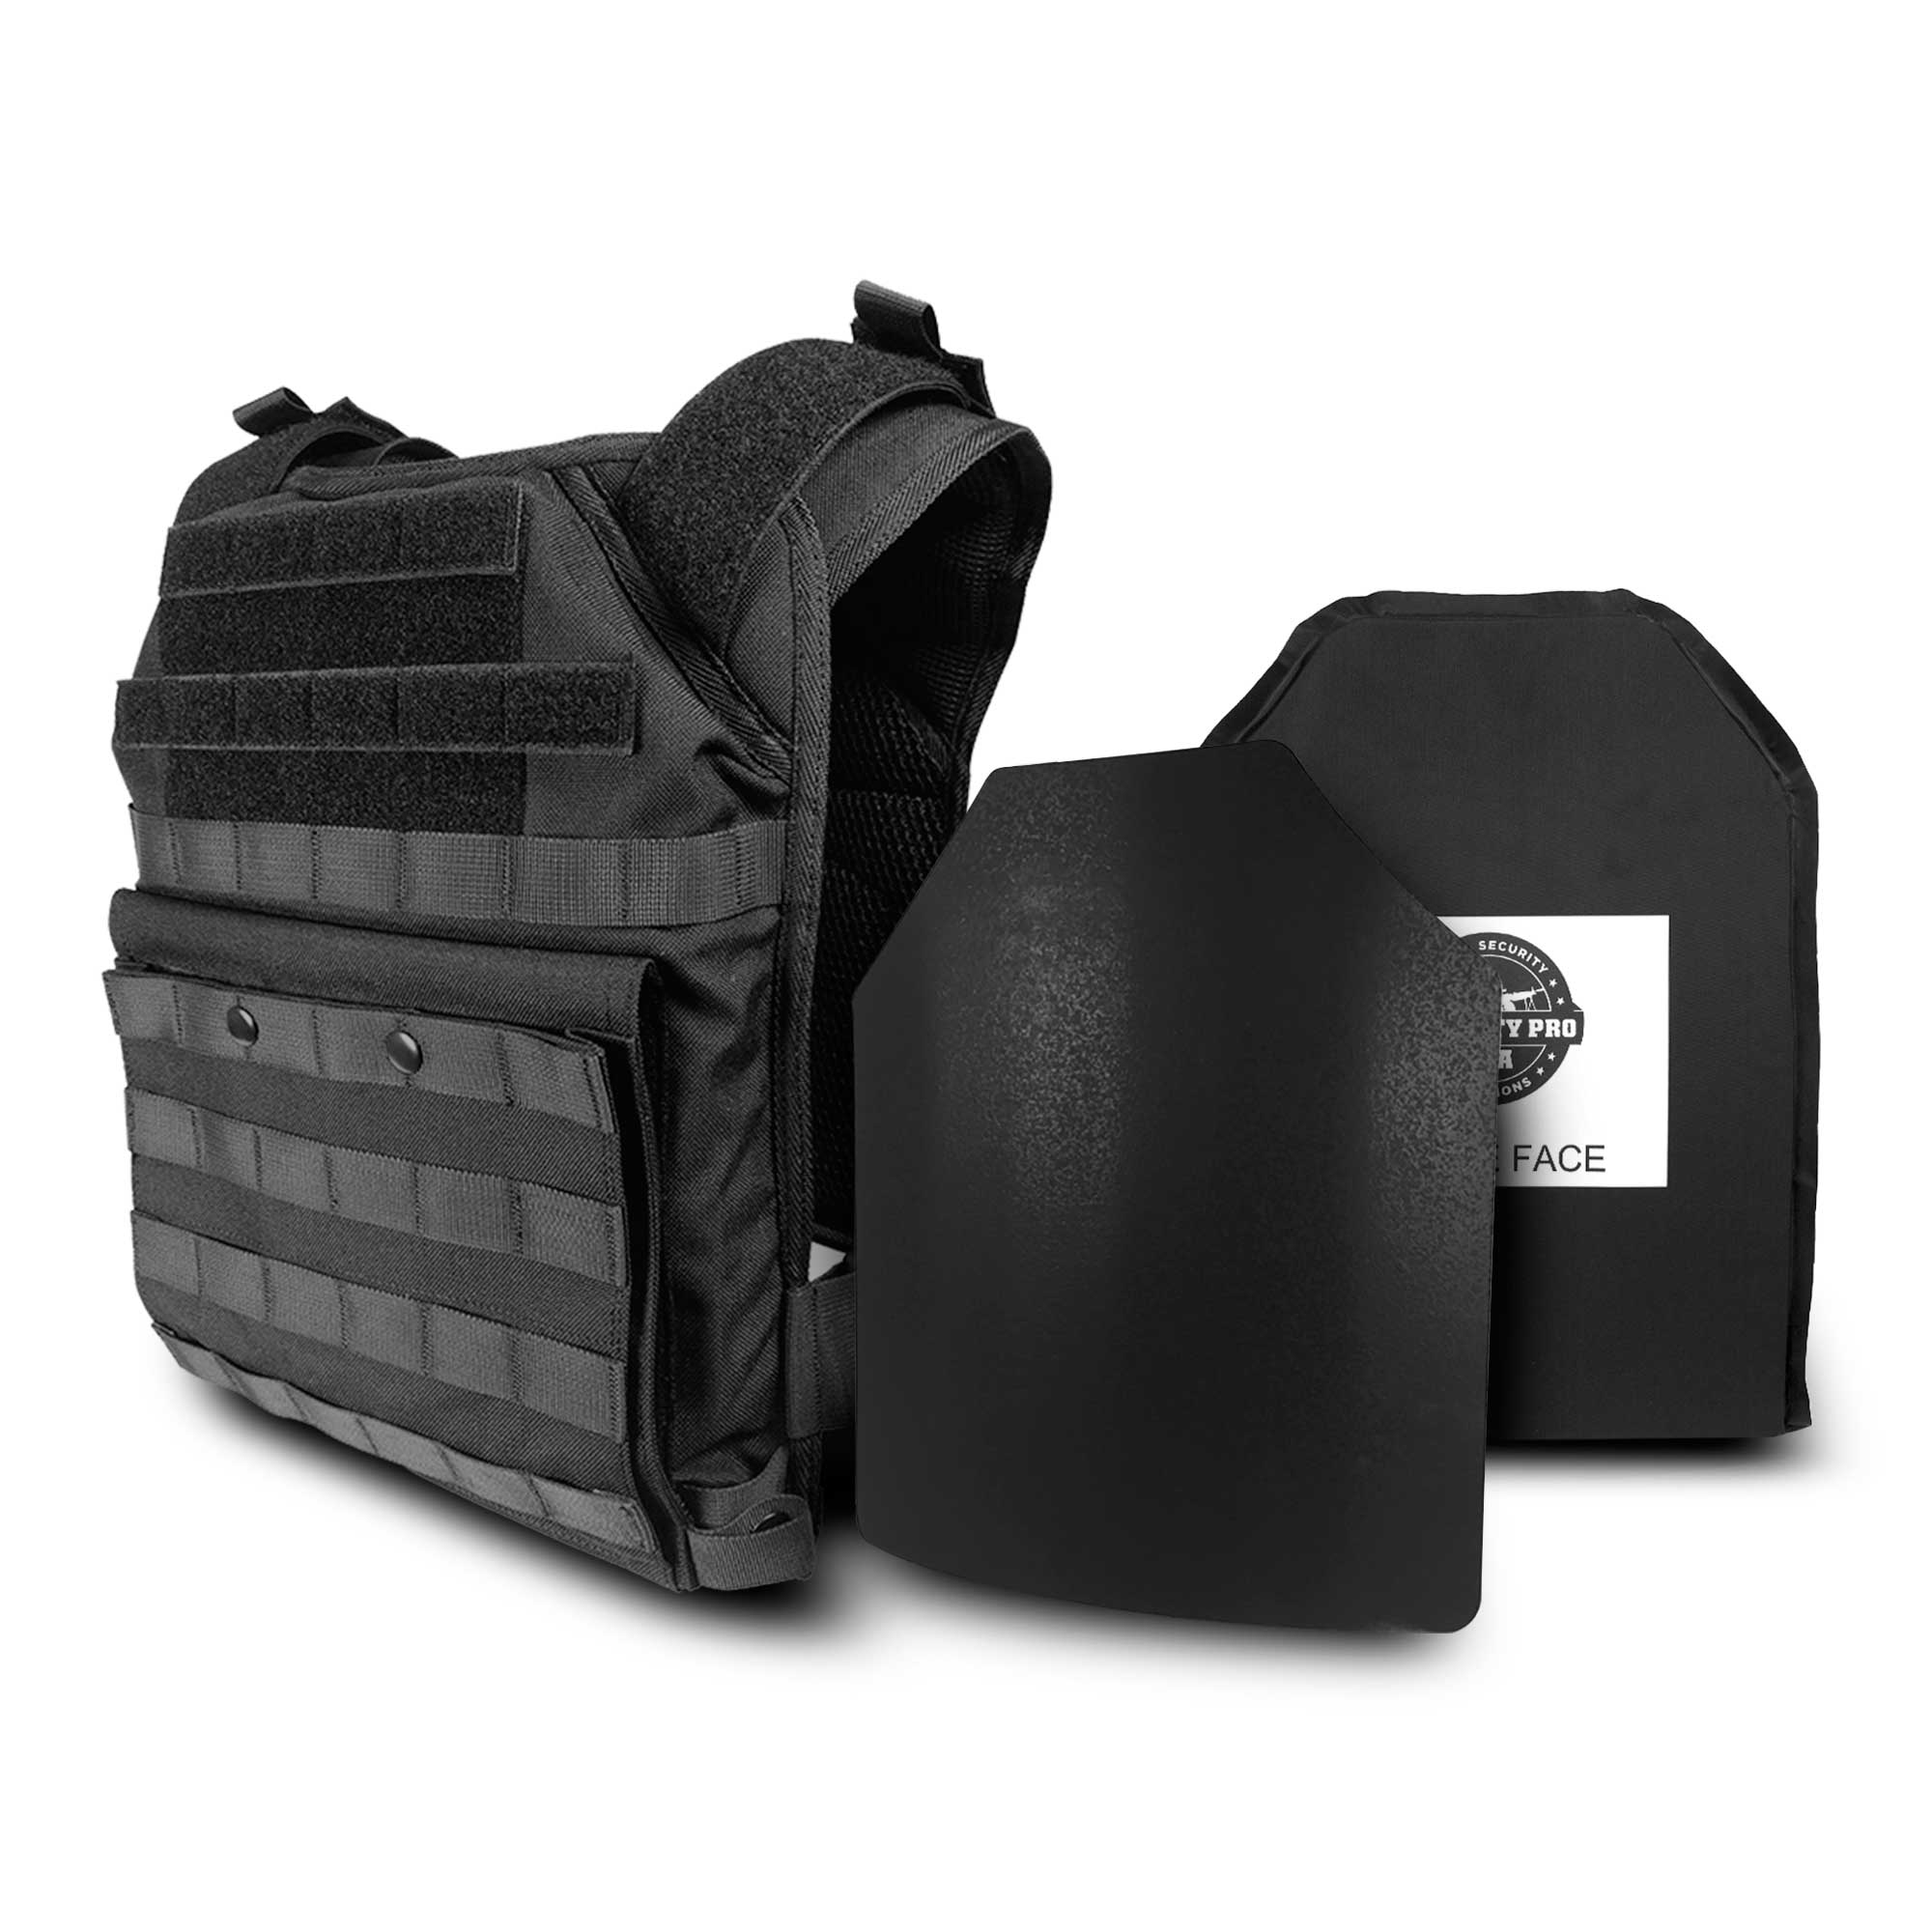 Body Armor Bundle - Plate Carrier with NIJ level 3 plates